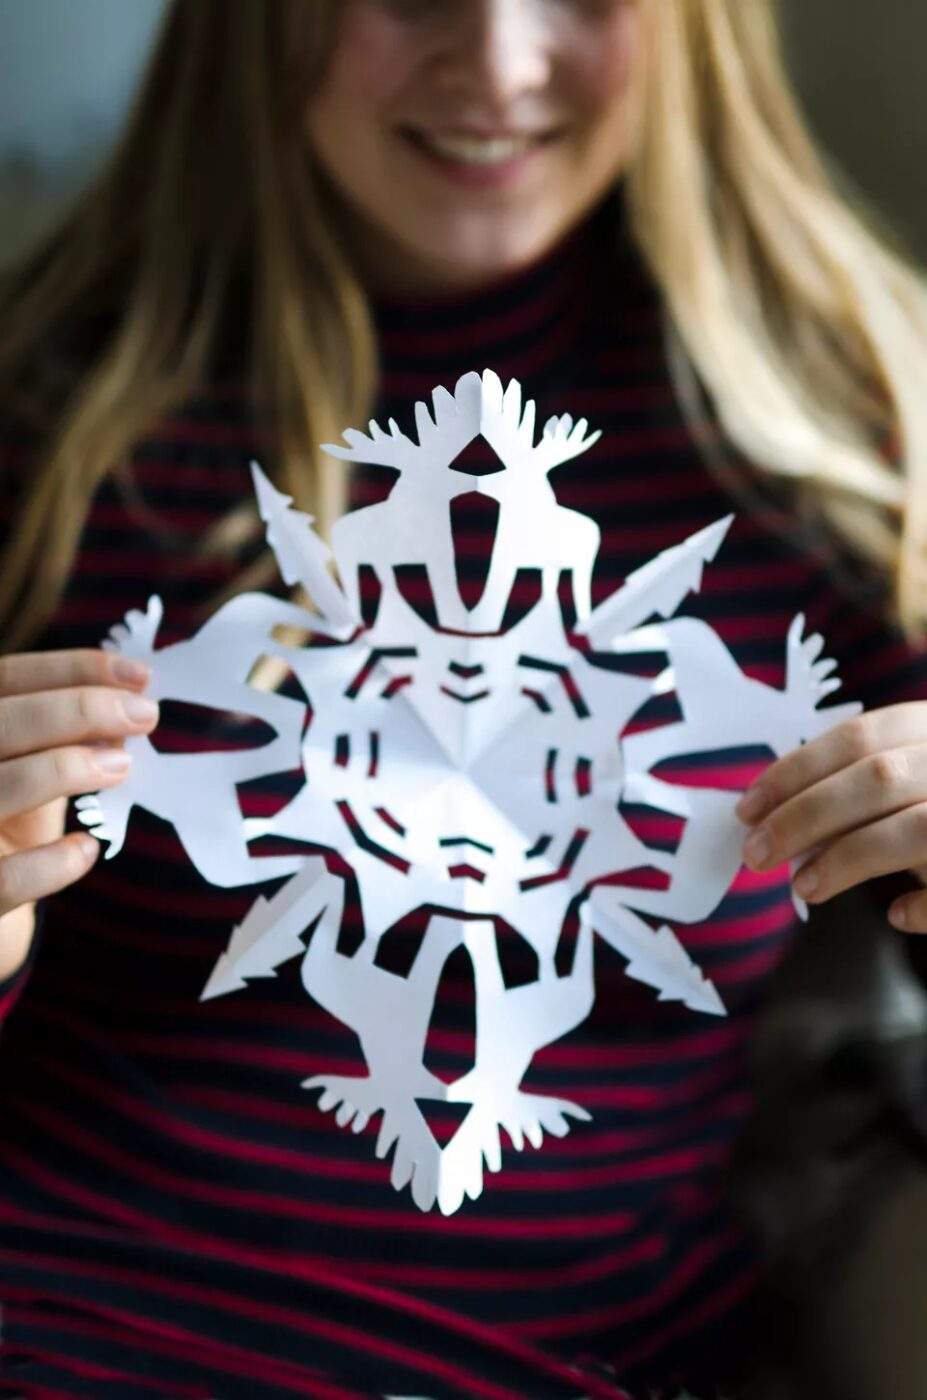 Make a Snowflake Craft 14 Ideas to Make Paper Snowflakes